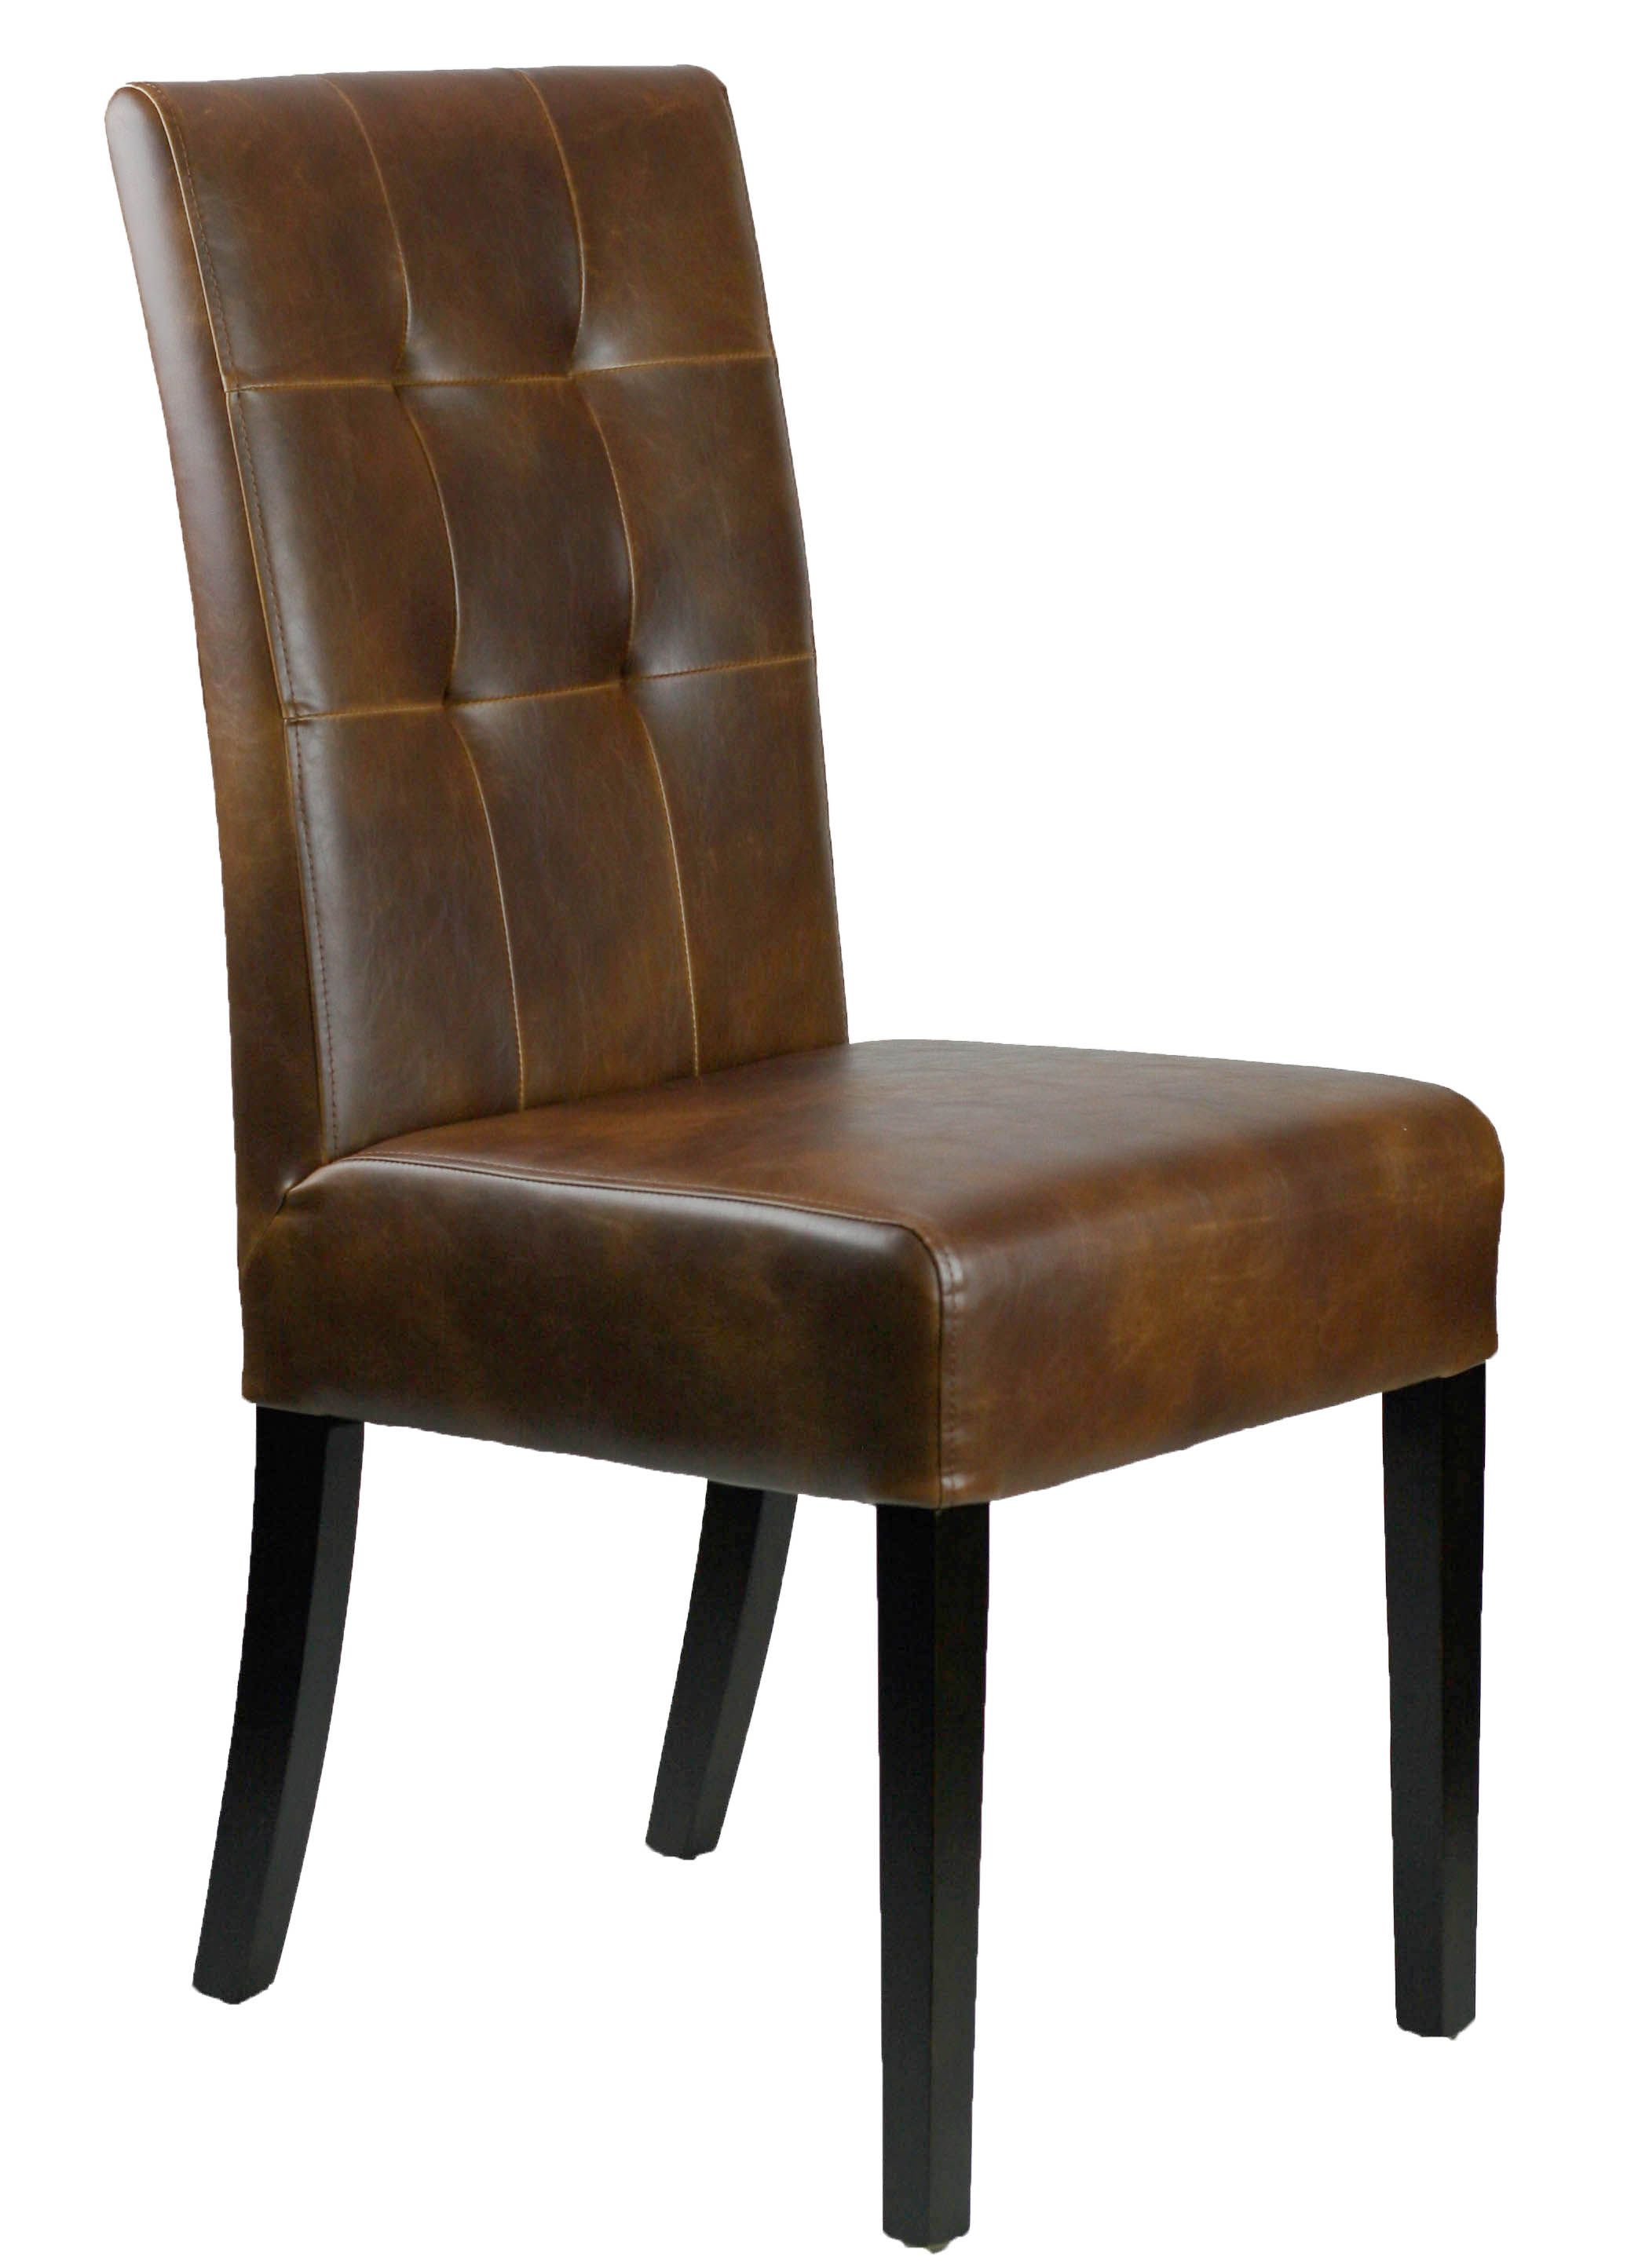 Distress Brown Tufted Leather Dining Chair In 2019